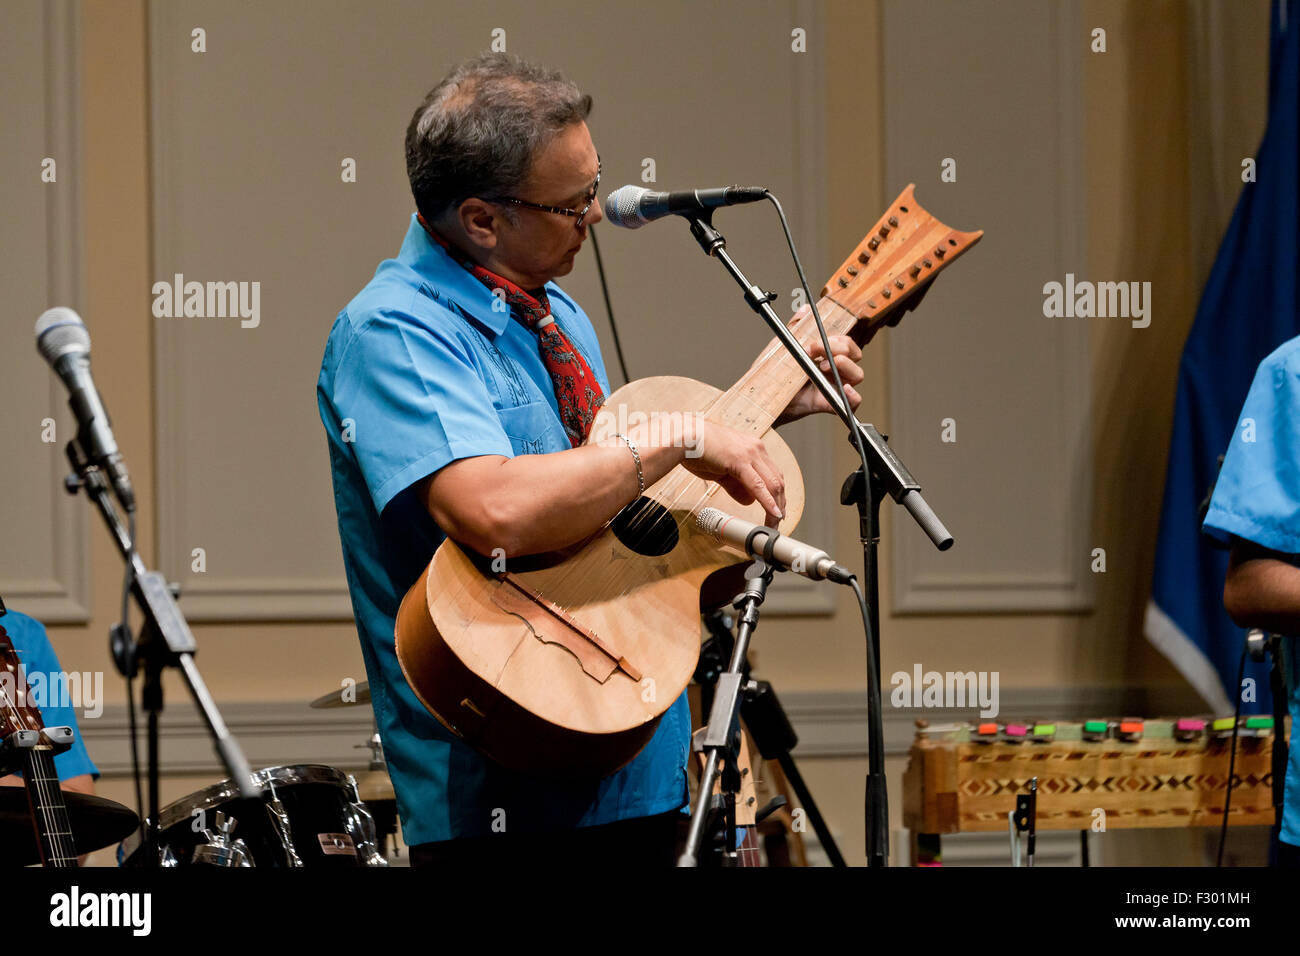 Man playing 12 string Mexican guitar on stage - USA - Stock Image